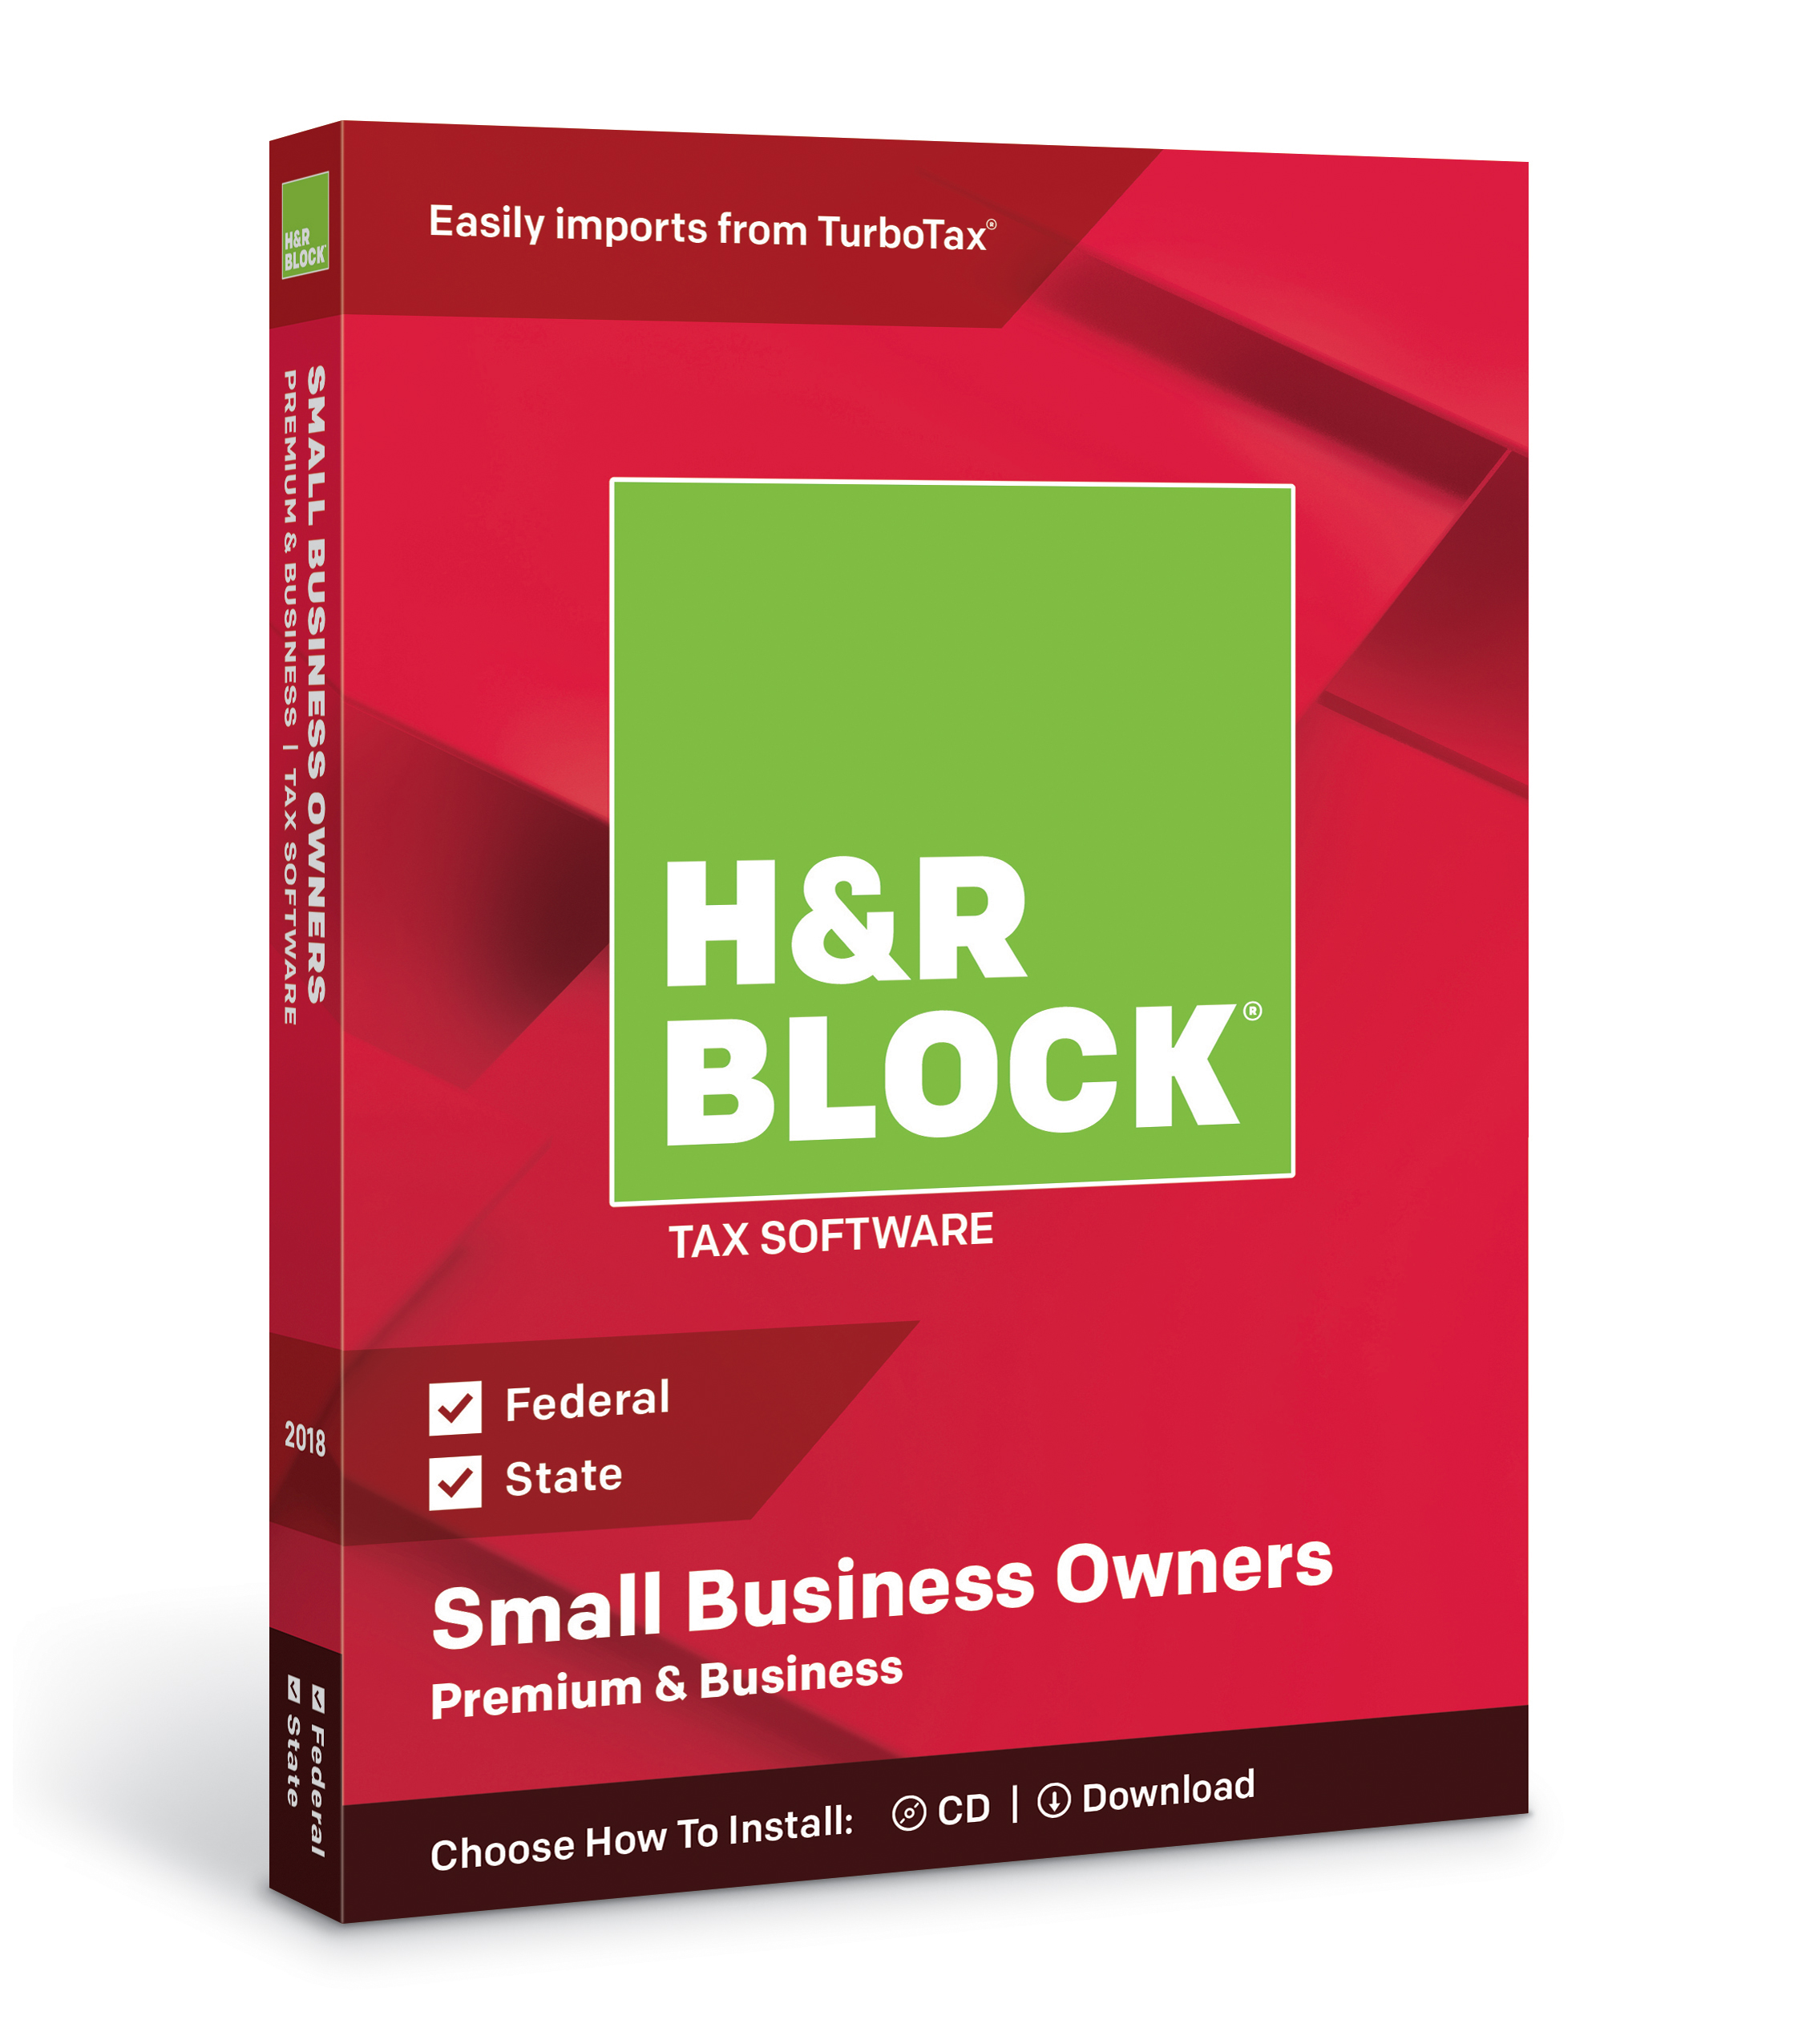 H&R Block Tax Software Premium & Business 2018